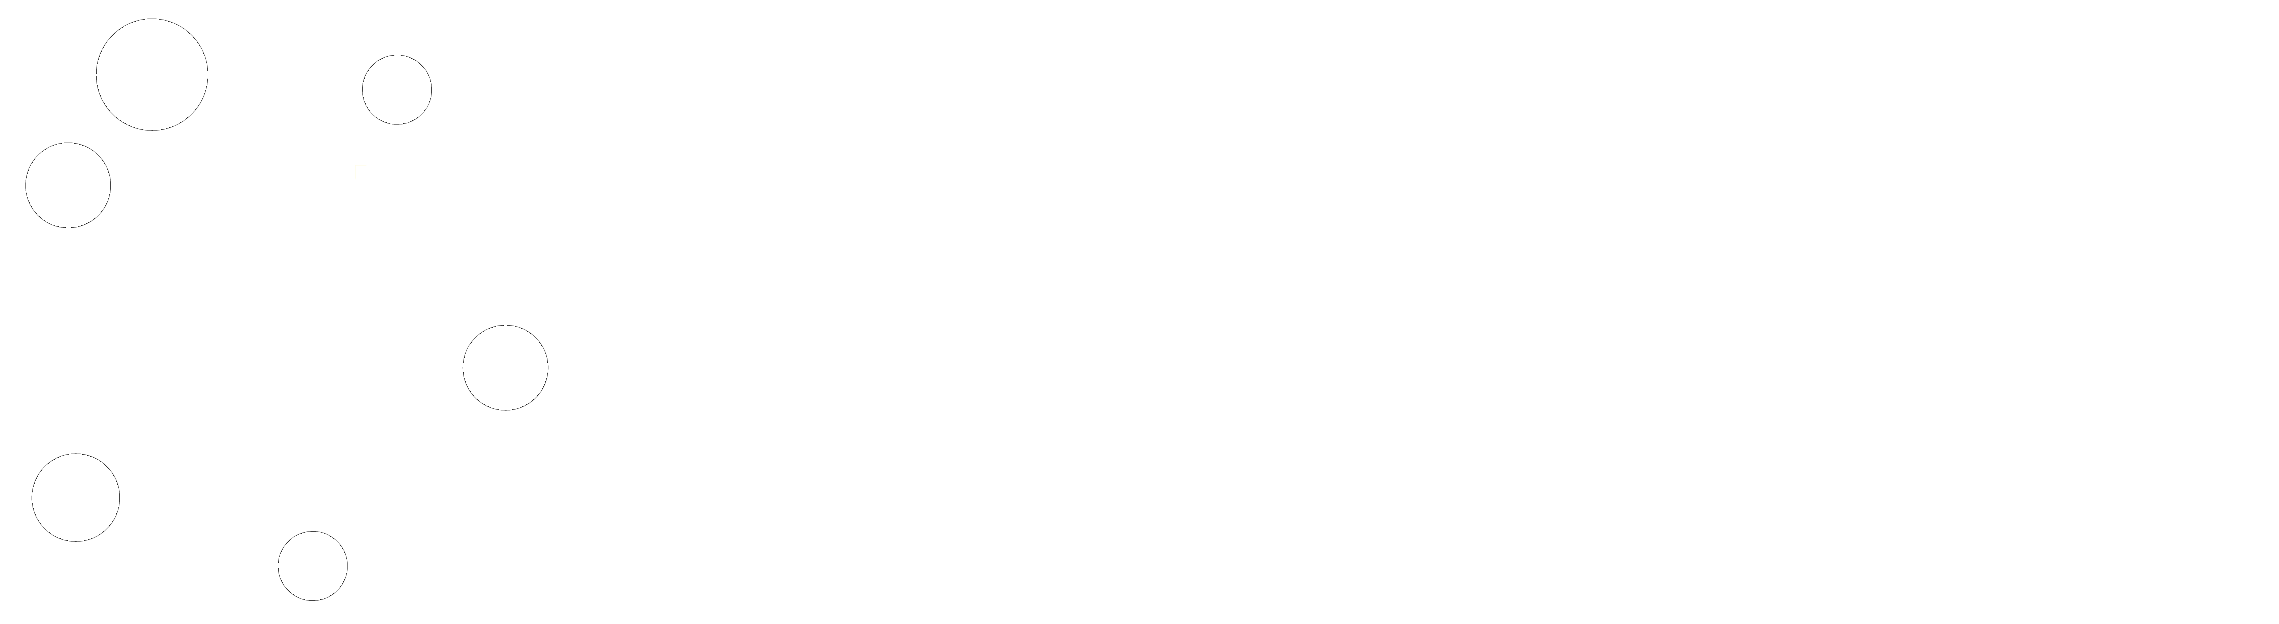 aggregate intellect logo